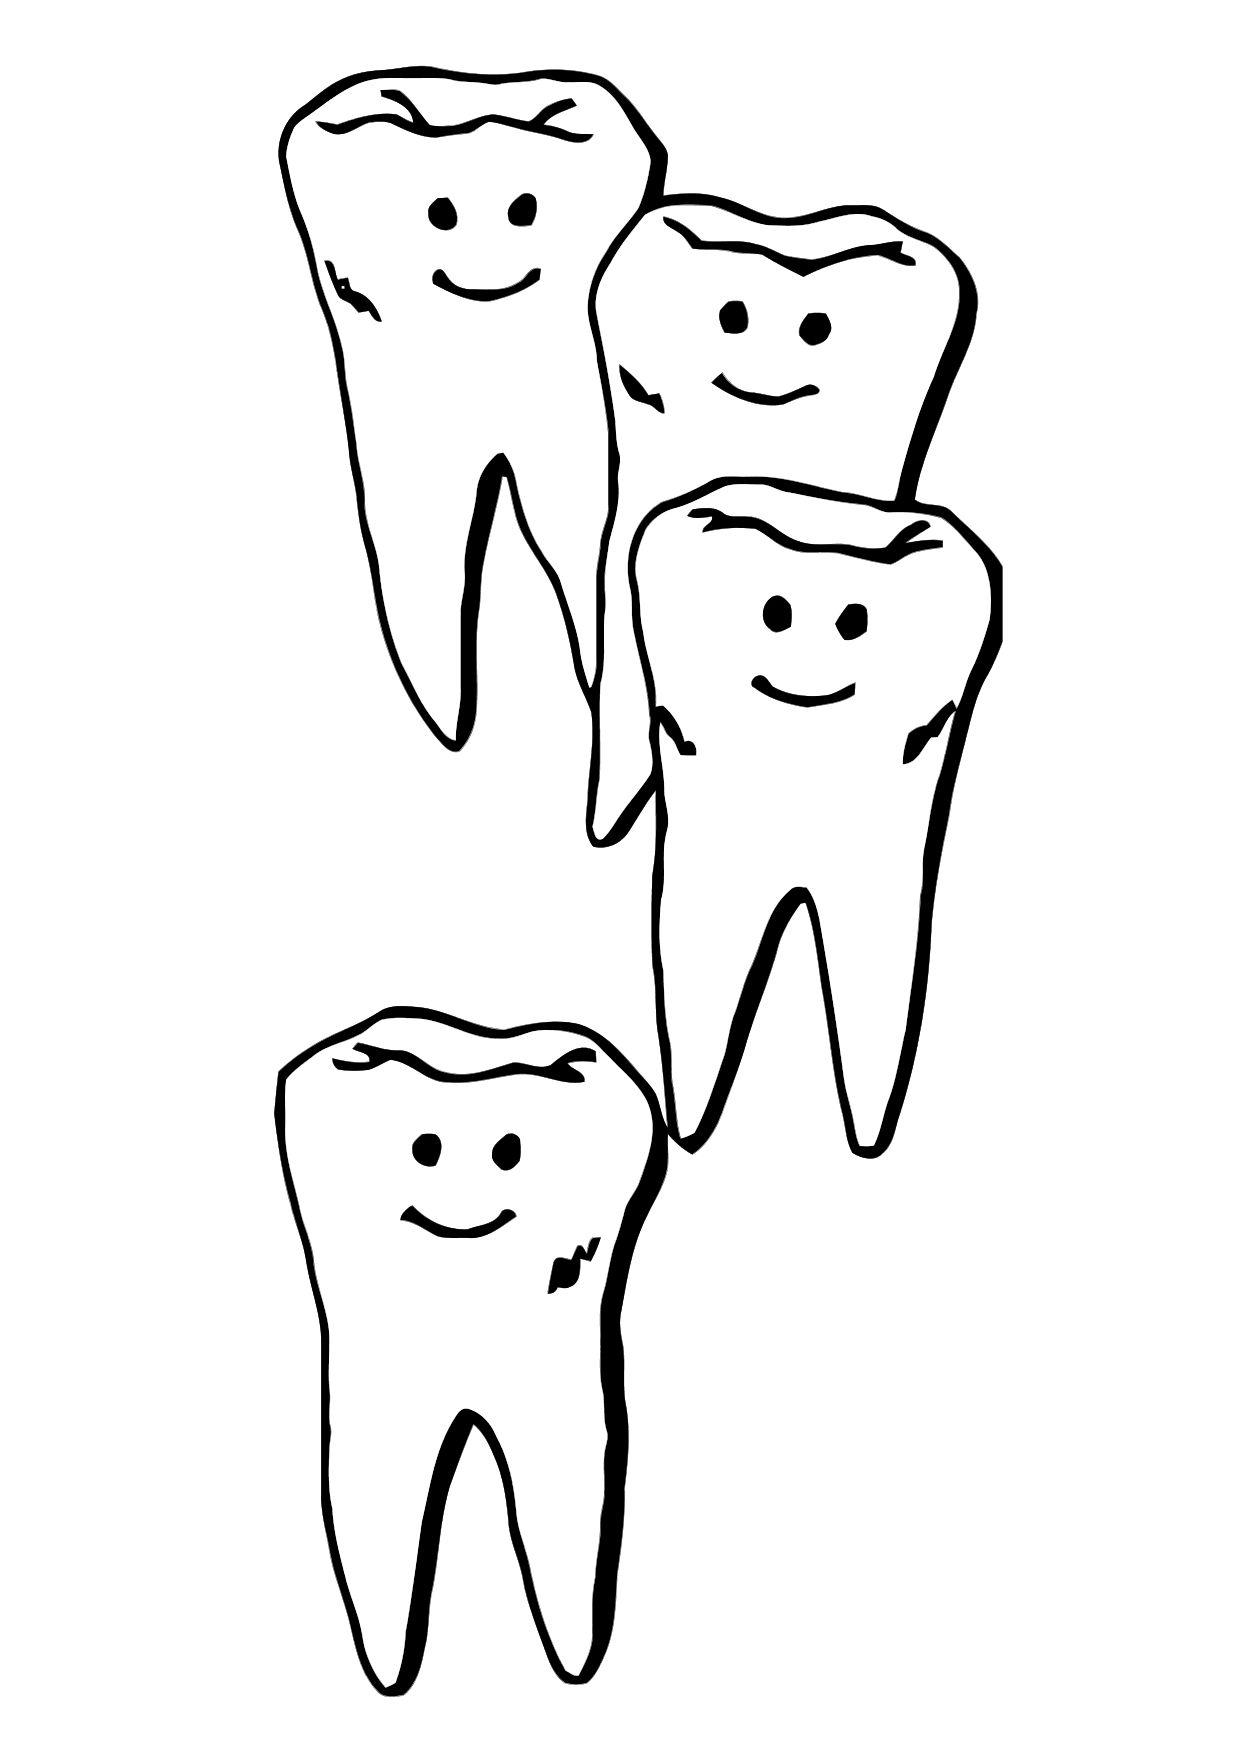 Tooth Line Drawing At Getdrawings